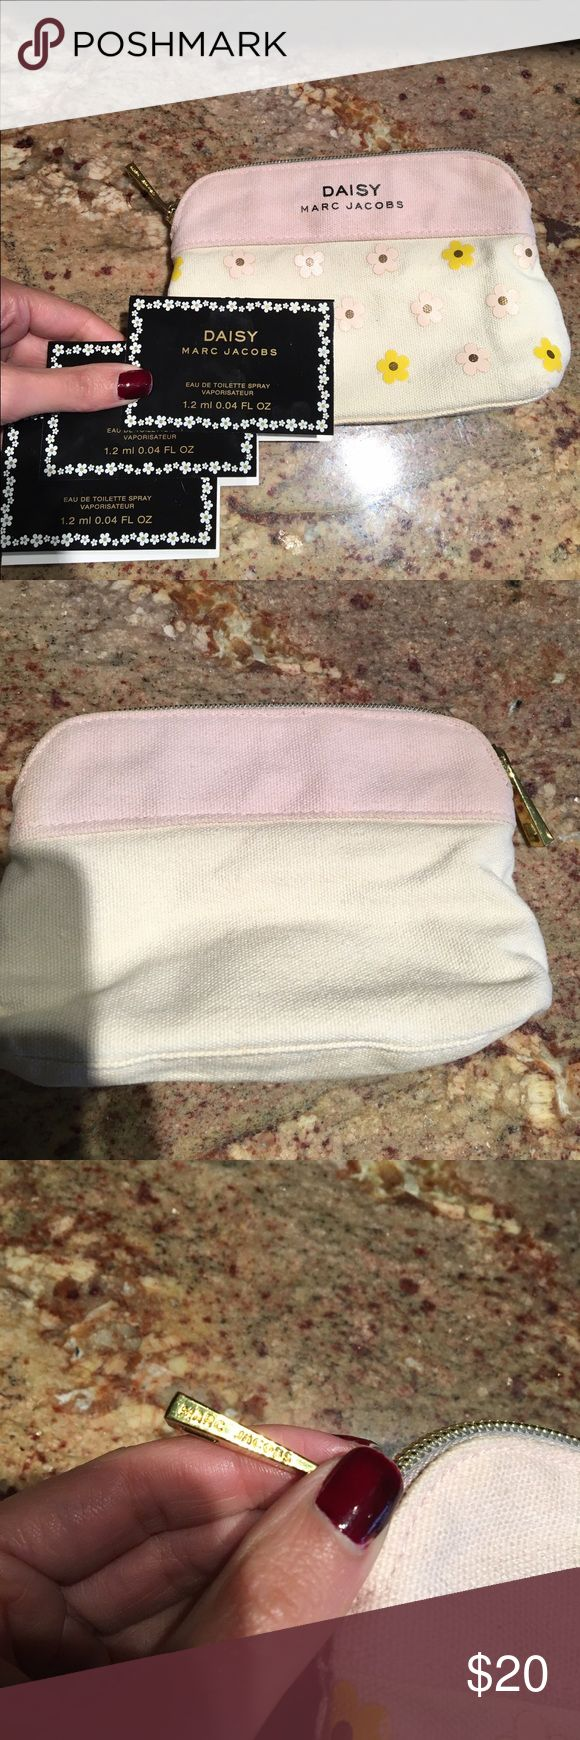 Marc Jacobs DAISY Make-Up Bag Authentic! Marc Jacobs make up bag. Perfect for purse/travel. Comes with 3 DAISY 1.2mL perfumes! Sephora Makeup